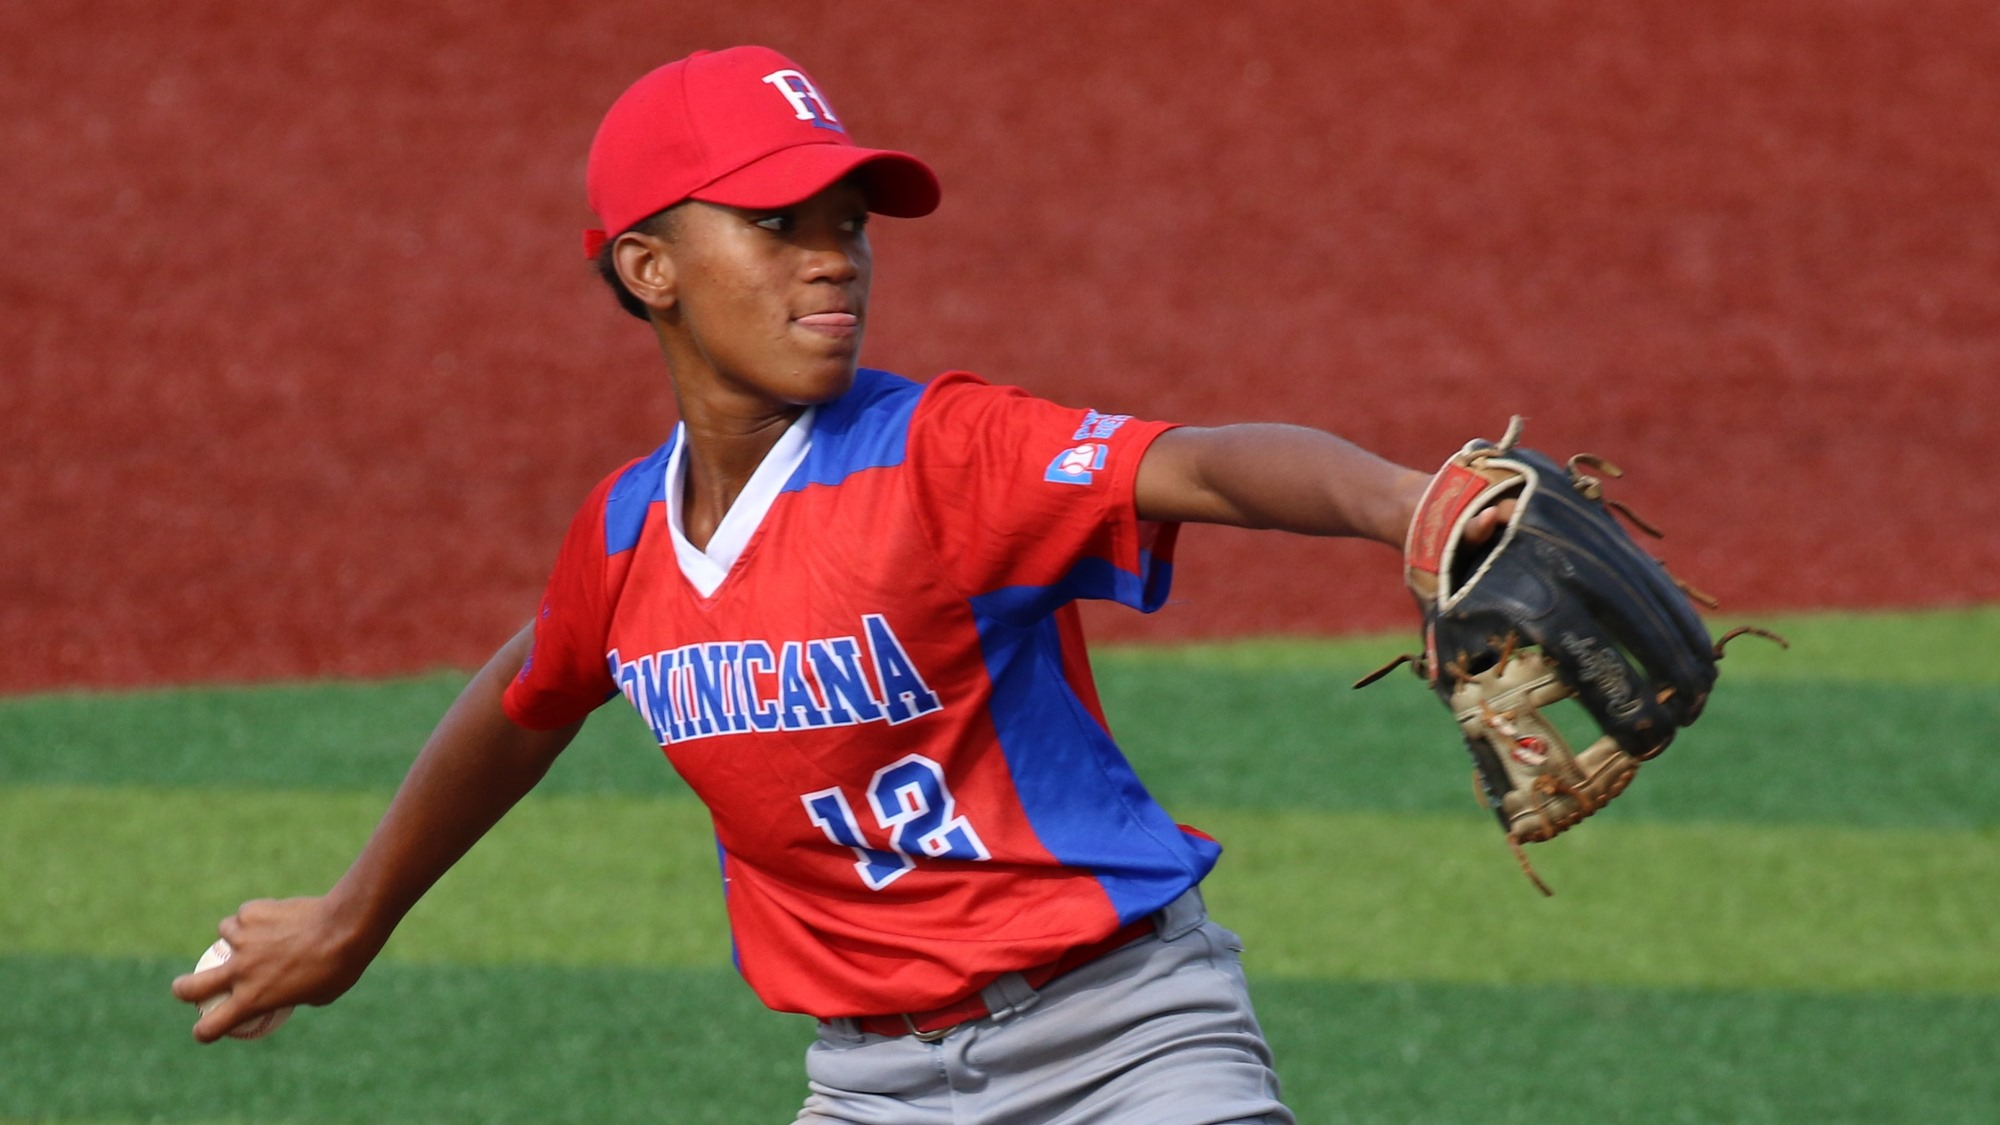 Lorena Medrano, started for the Dominican Republic